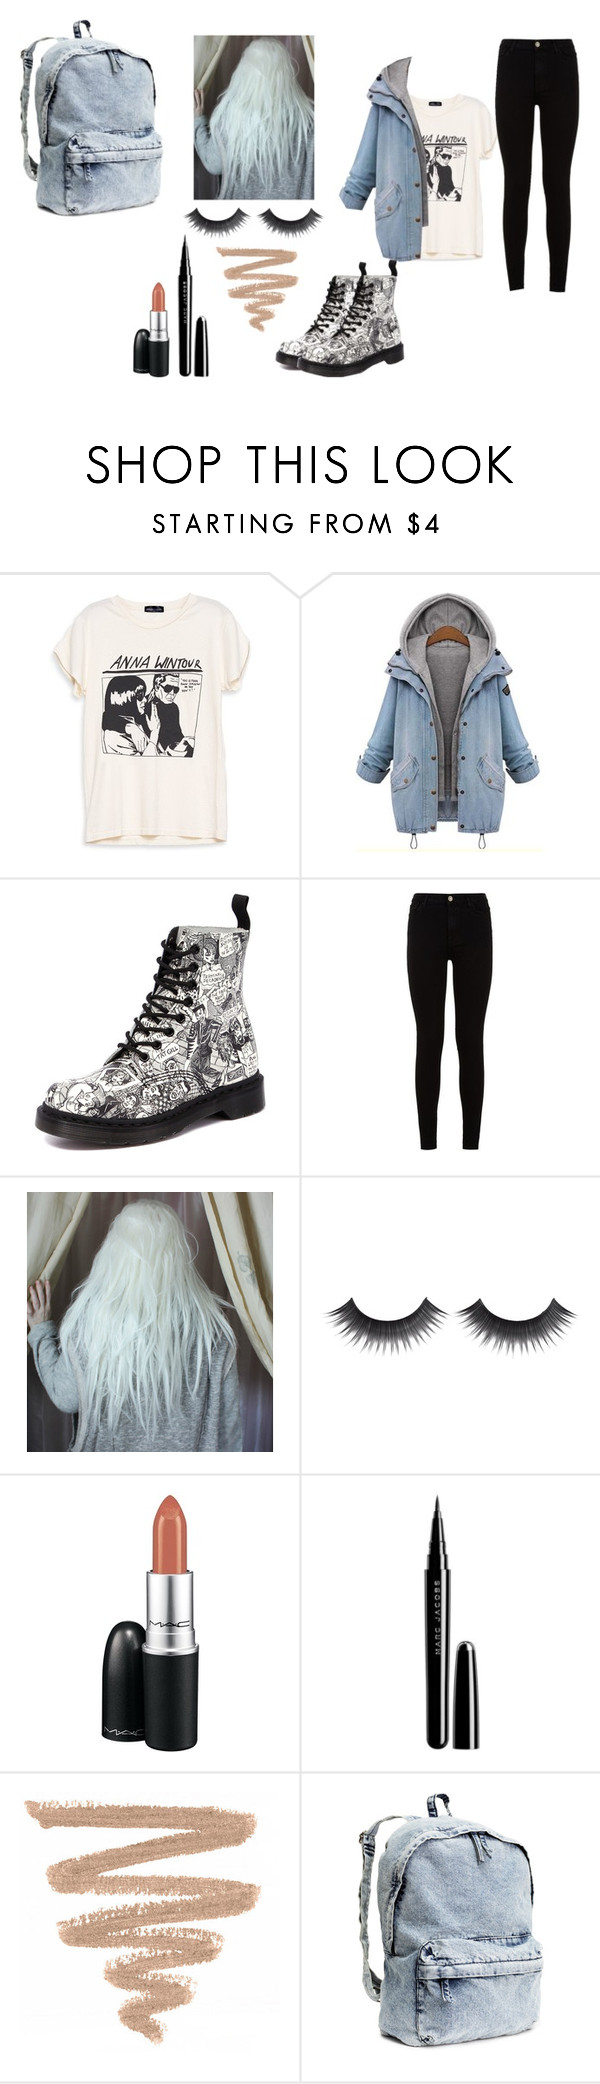 """""""Без названия #41"""" by stupideh ❤ liked on Polyvore featuring Amaya, Dr. Martens, 7 For All Mankind, MAC Cosmetics, Marc Jacobs and H&M"""